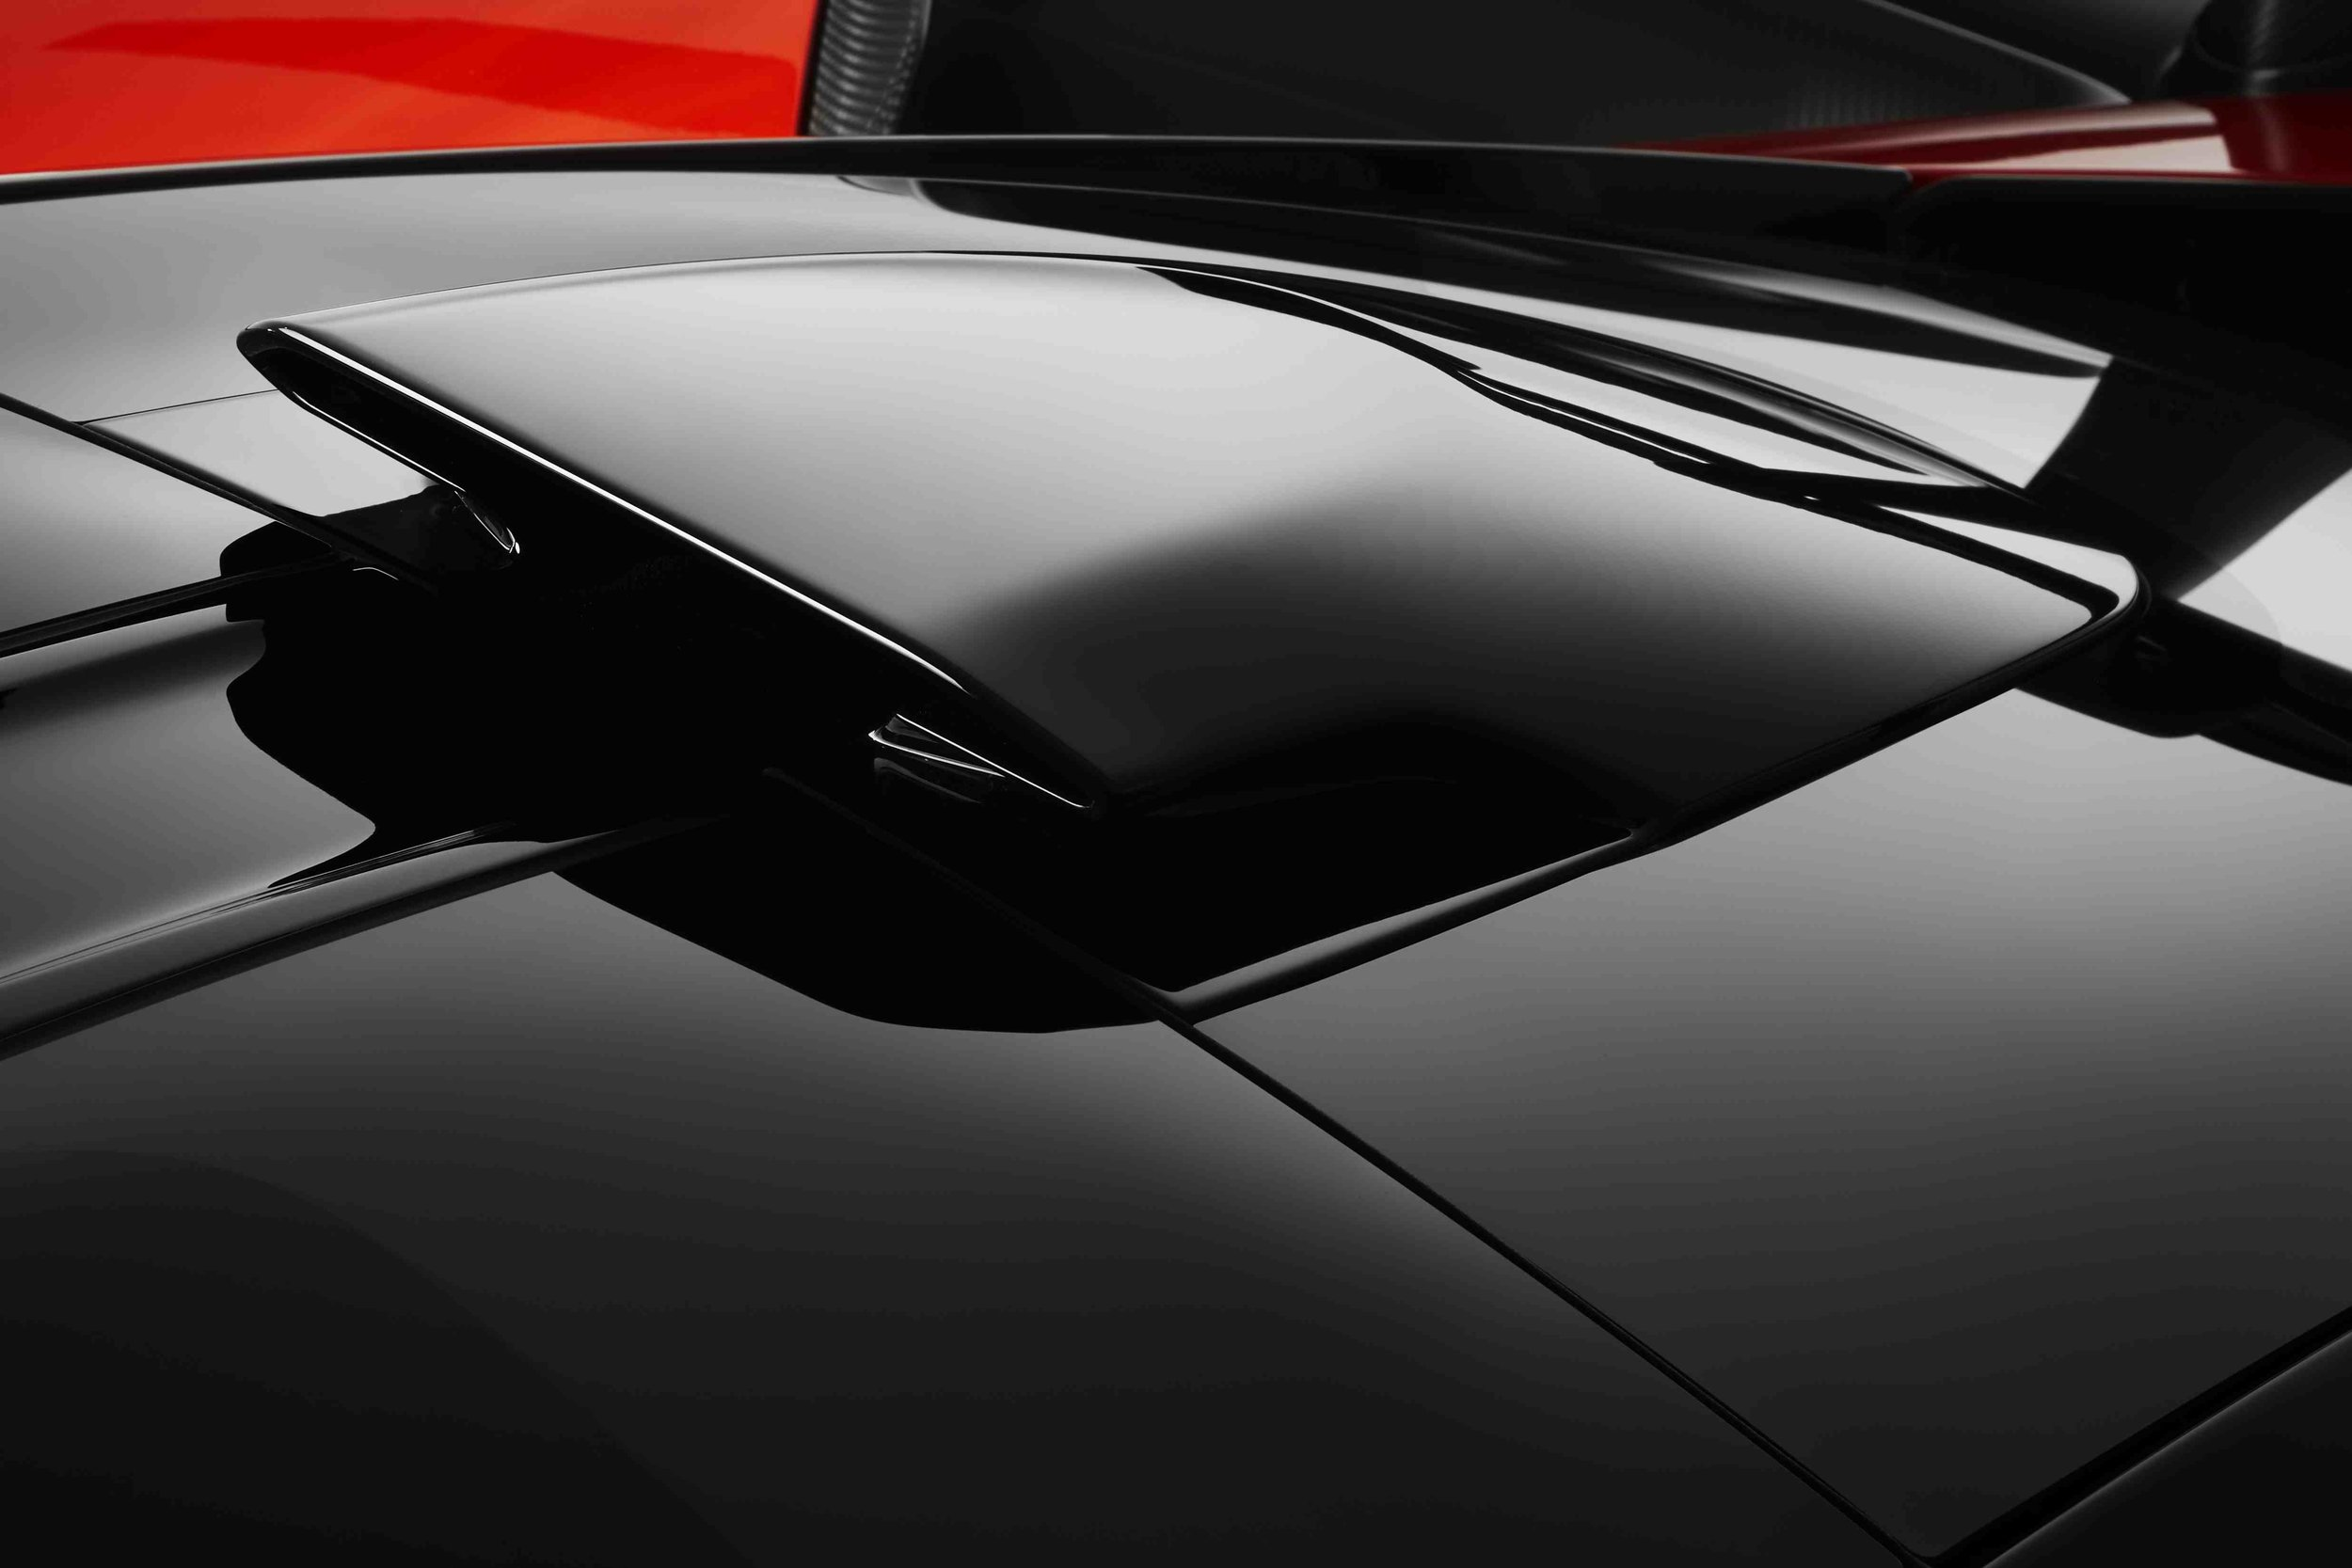 8617McLaren-Senna-roof-scoop.jpg